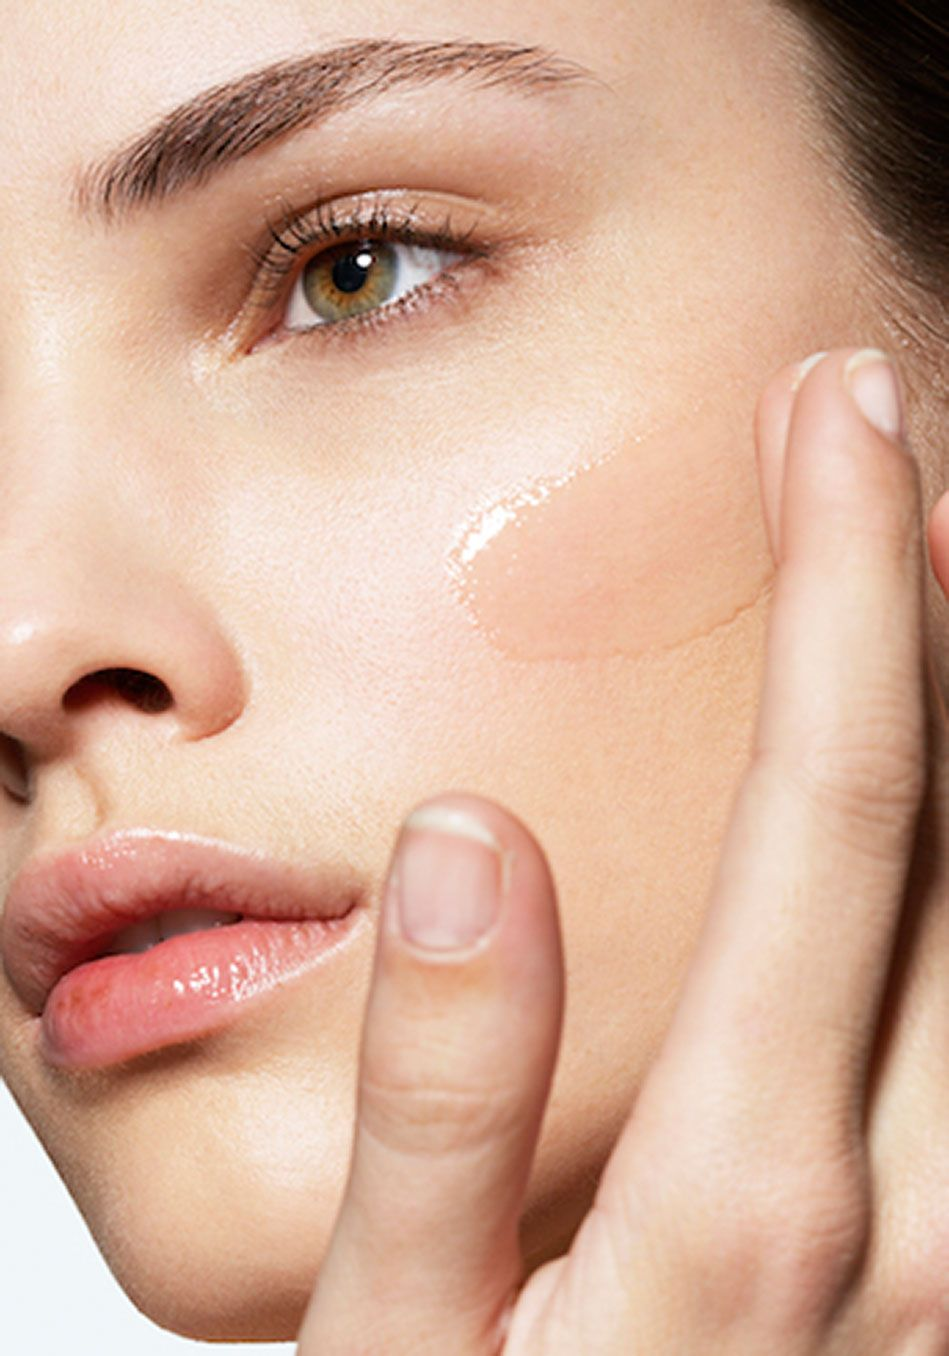 6 Steps to a Perfectly MadeUp Face Makeup tips for oily